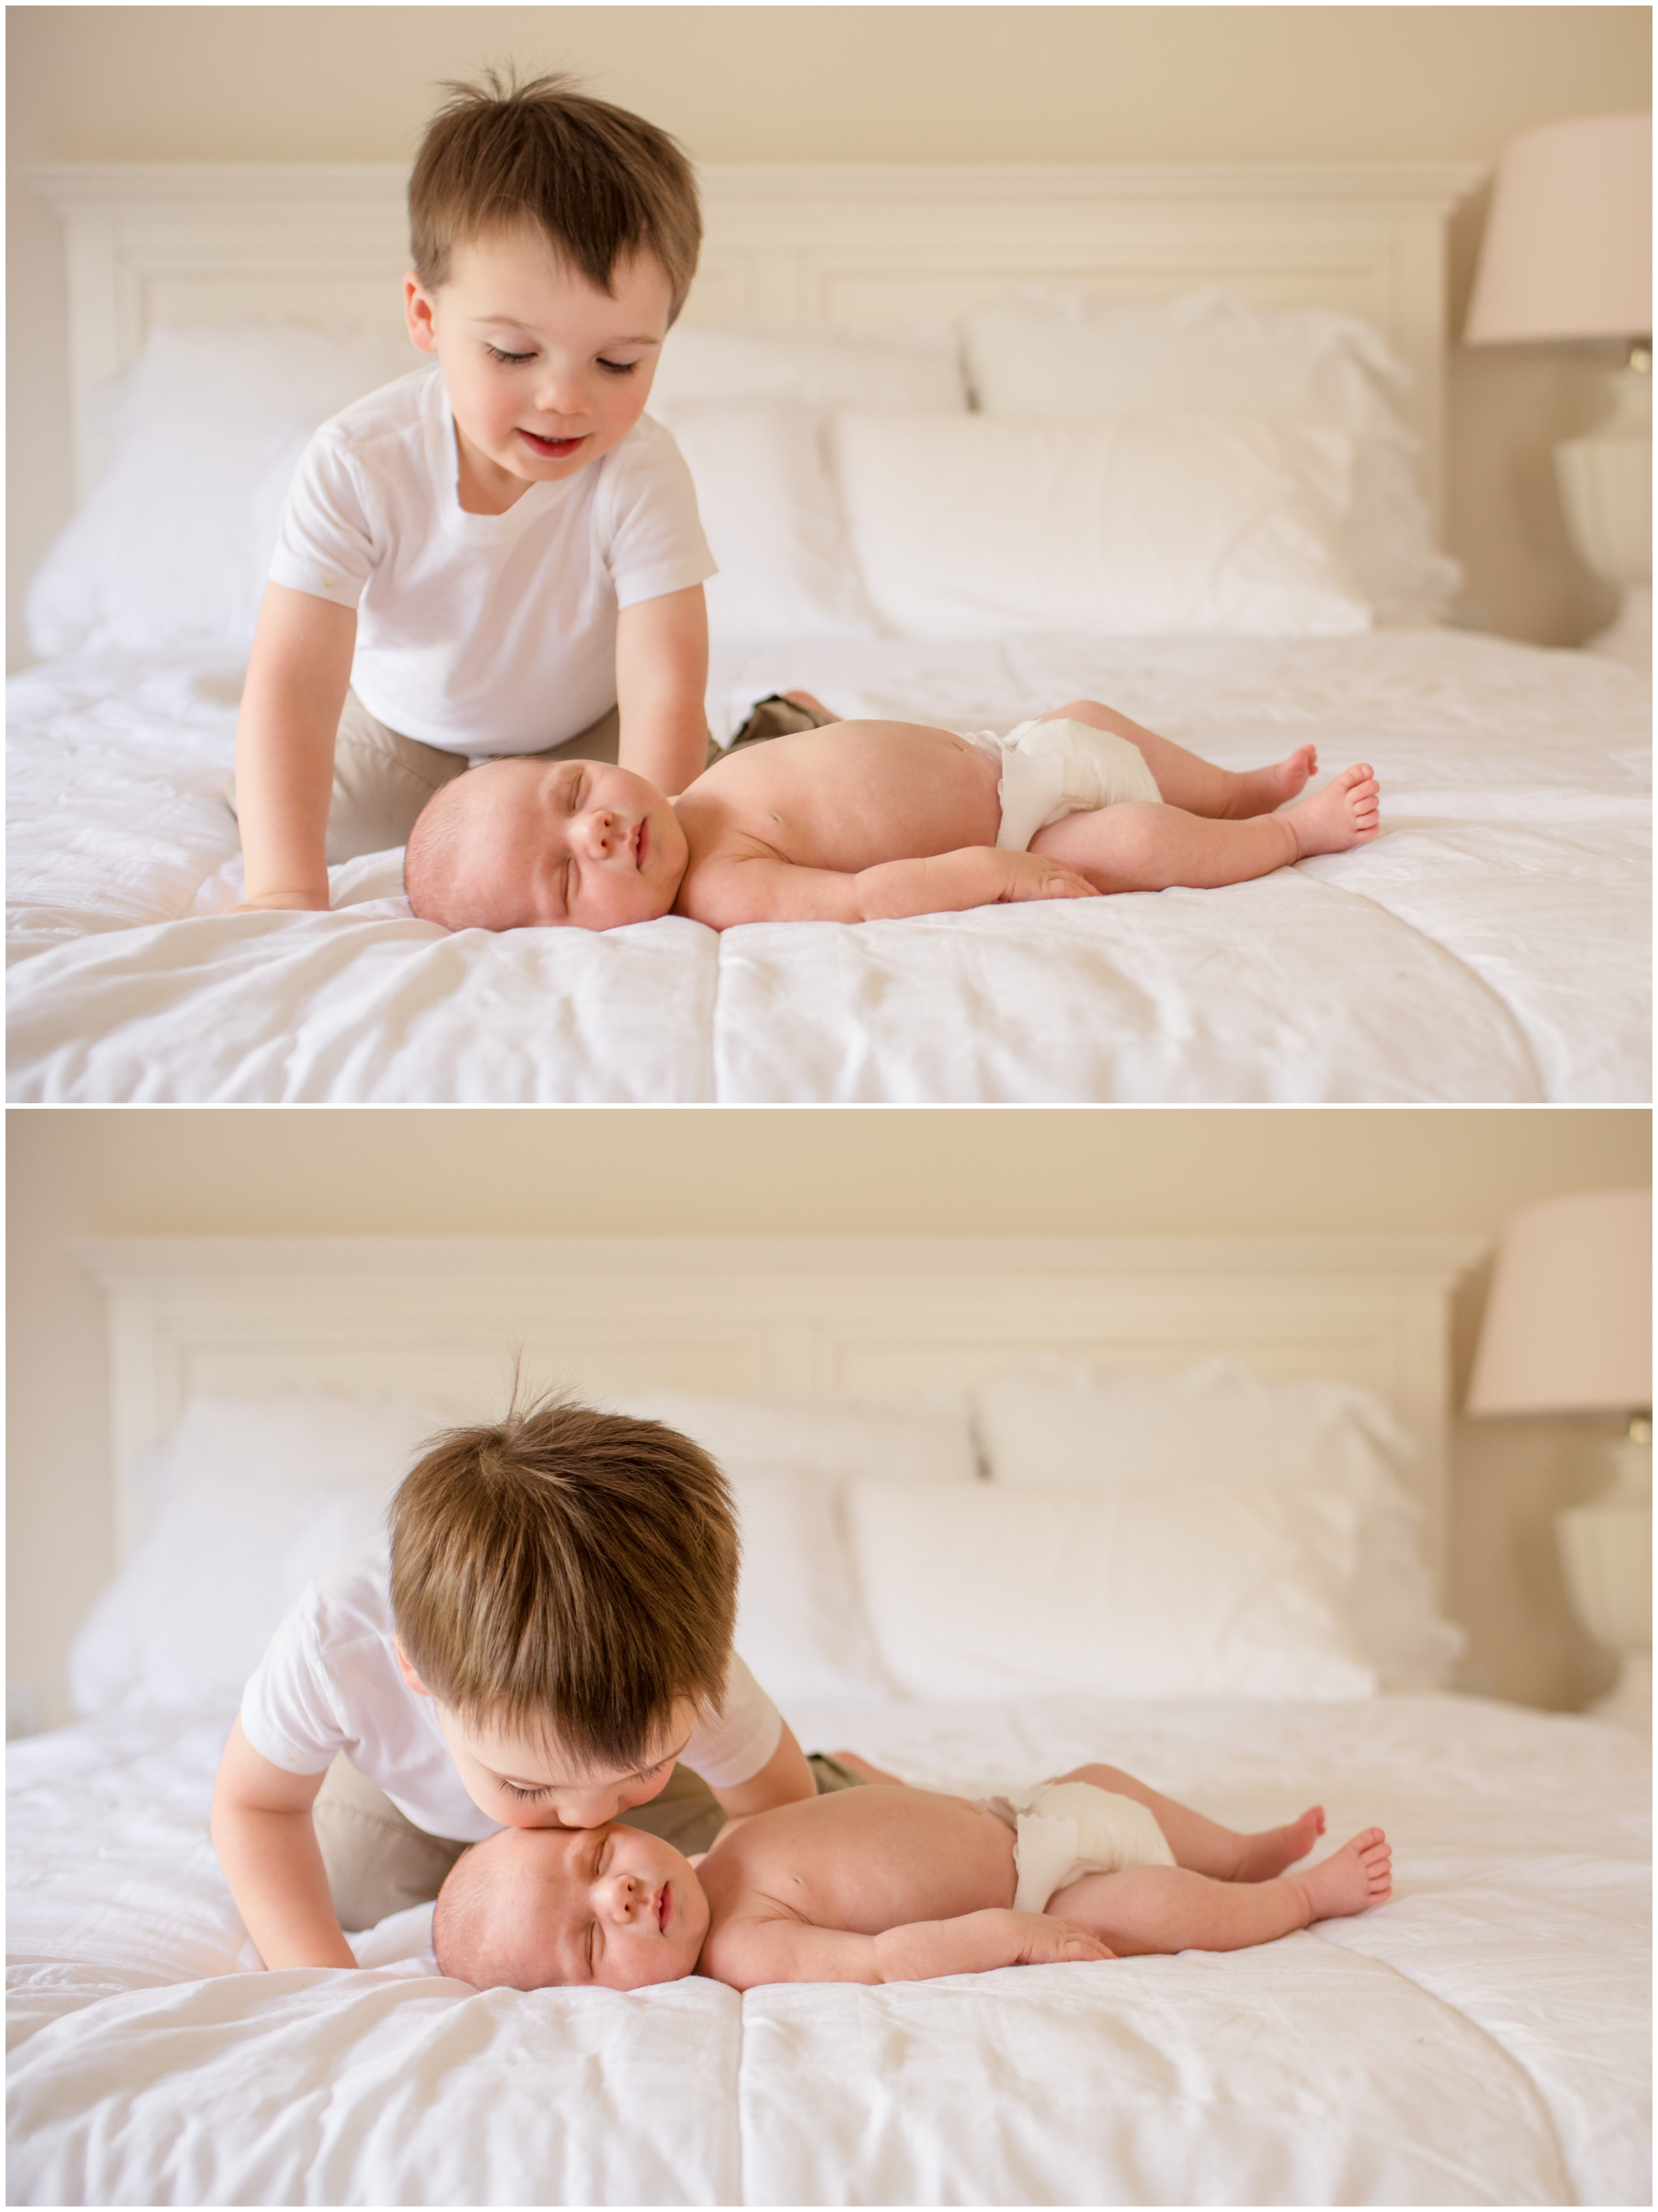 Lifestyle Newborn with Sibling by Just Maggie Photography - Los Angeles Newborn Photographer